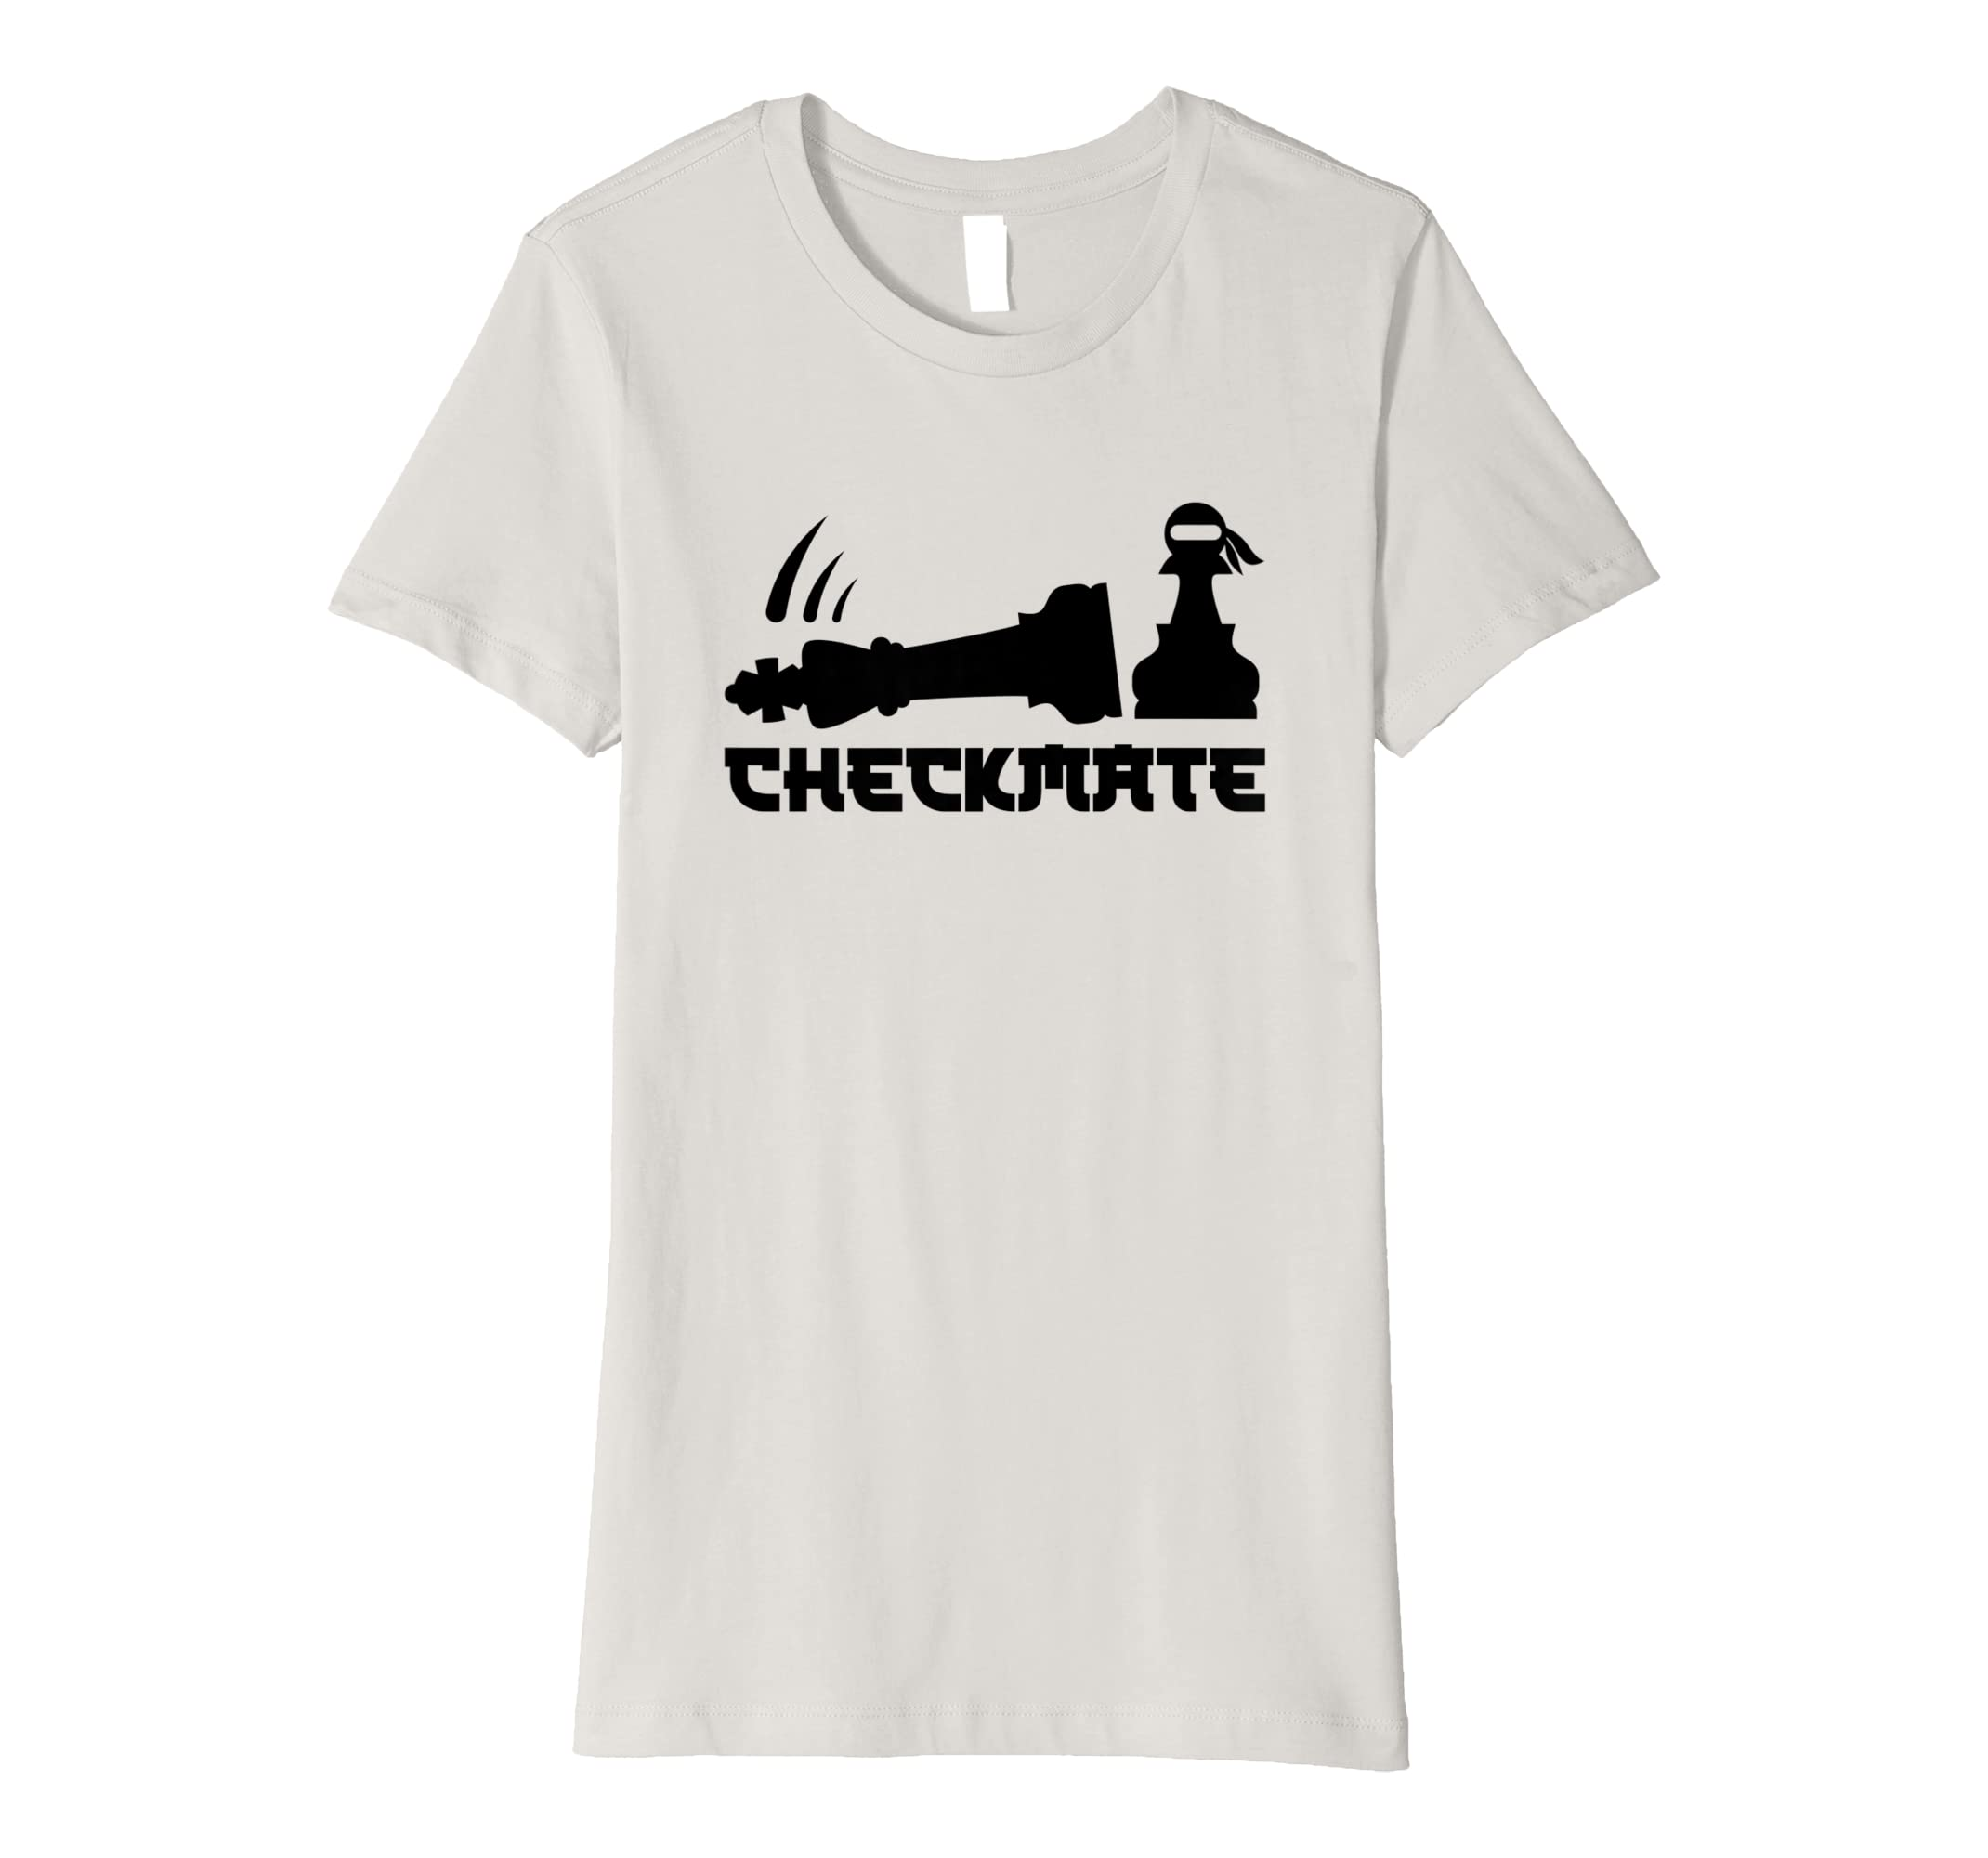 Chess Ninja Master Checkmate Funny Design Gift T Shirt Scooter Tow Harness Clothing